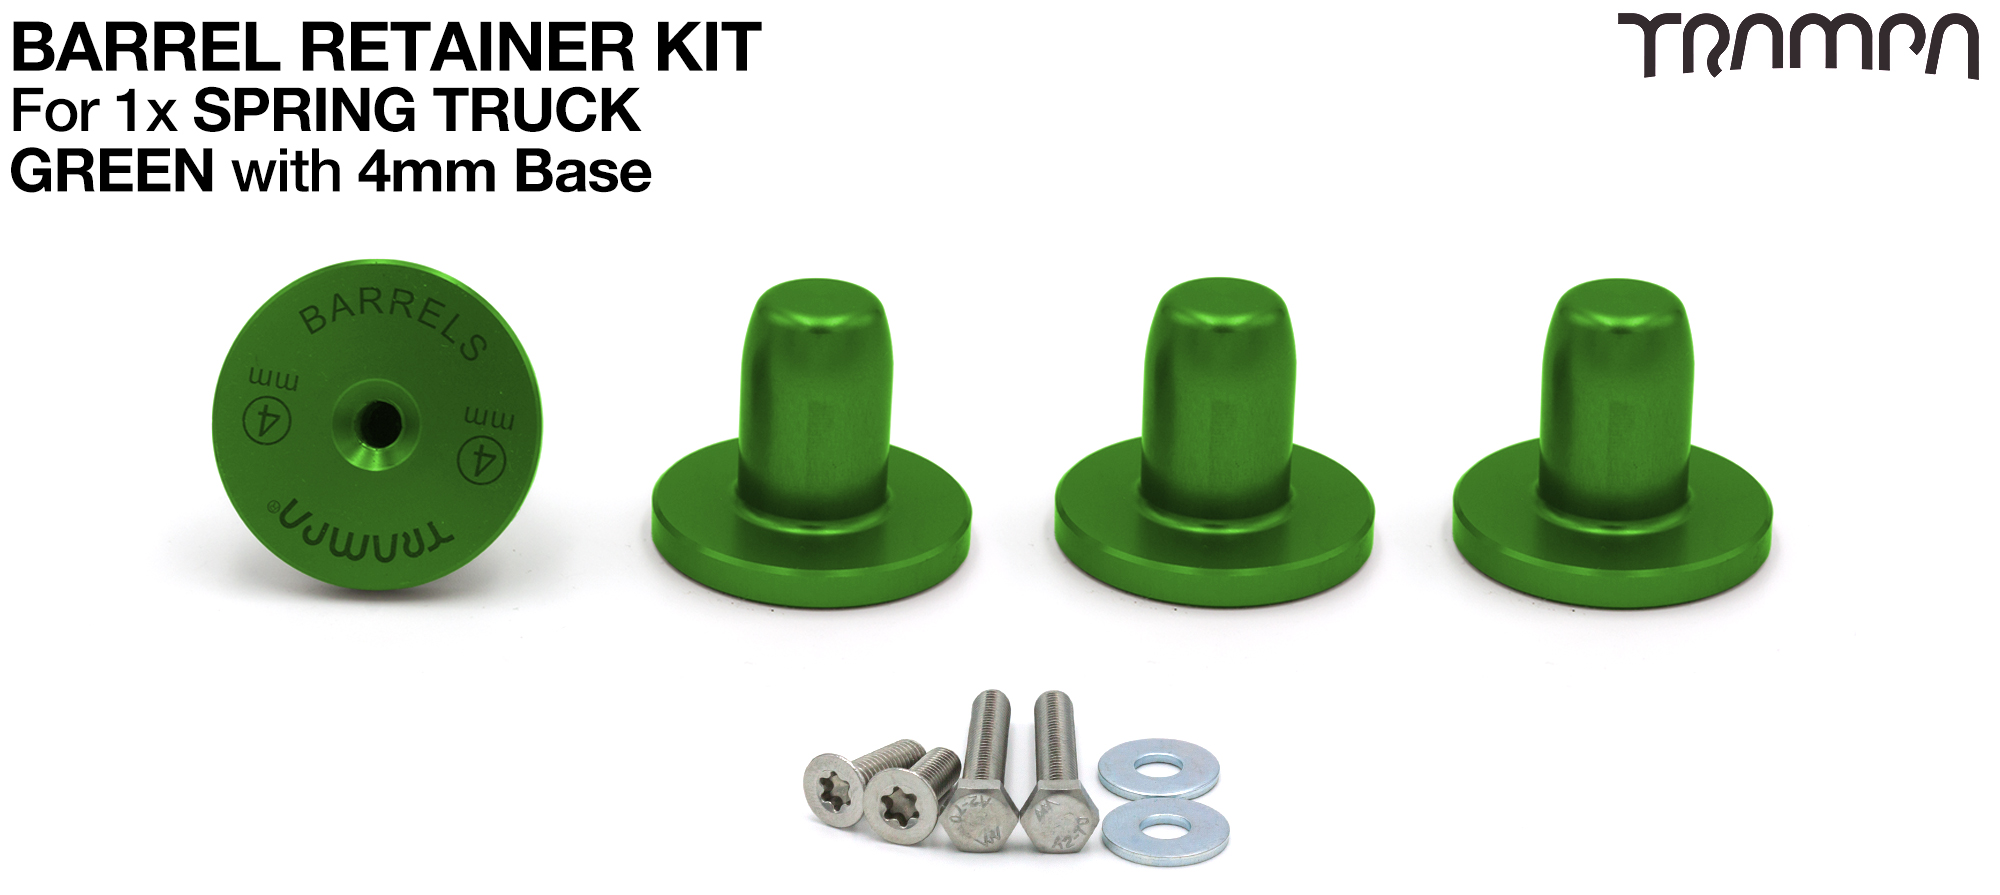 GREEN Barrel Retainers x4 with 4mm Base